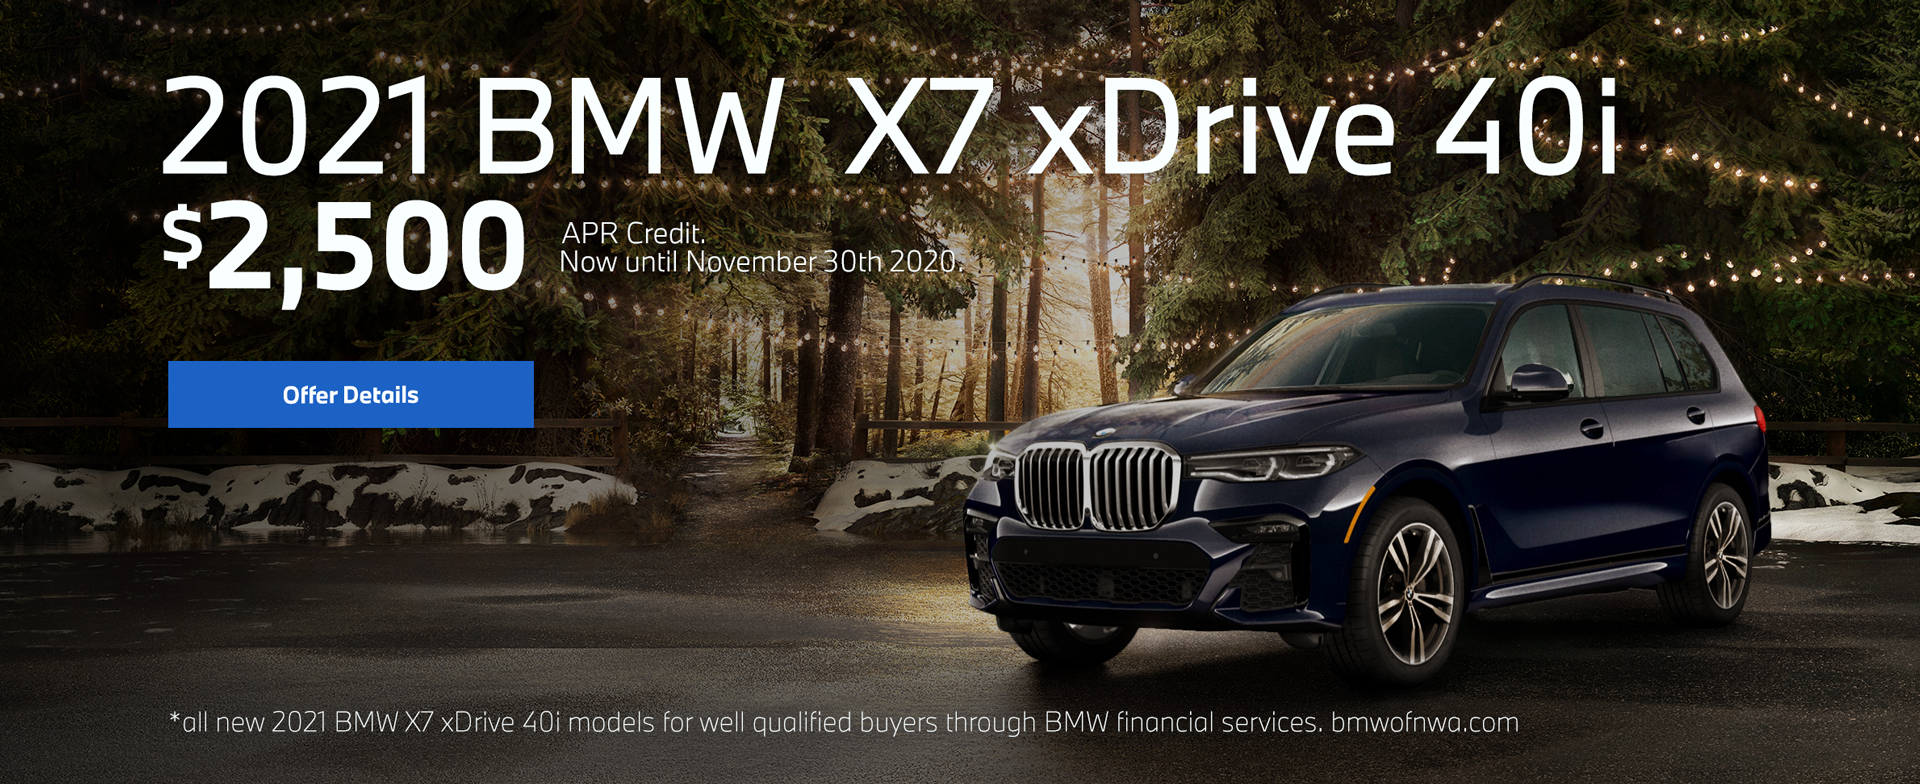 All new 2021 BMW X7 xDrive 40i models for well qualified buyers through BMW financials services.